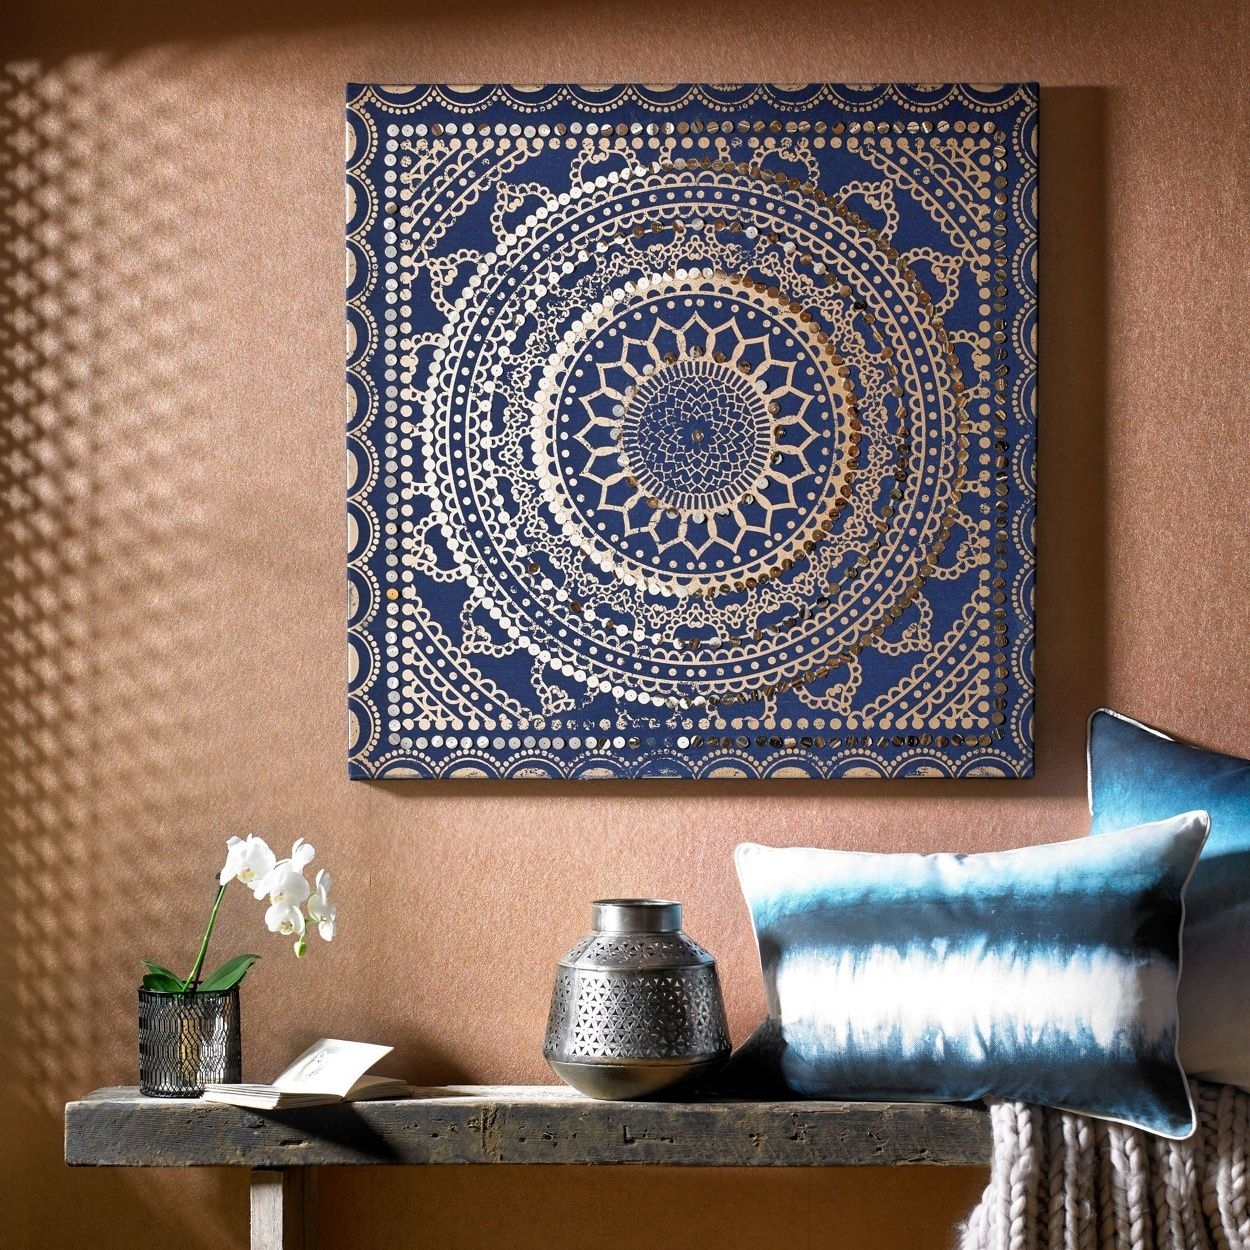 Make A Statement With This Moroccan Inspired Fabric Canvas (View 9 of 15)